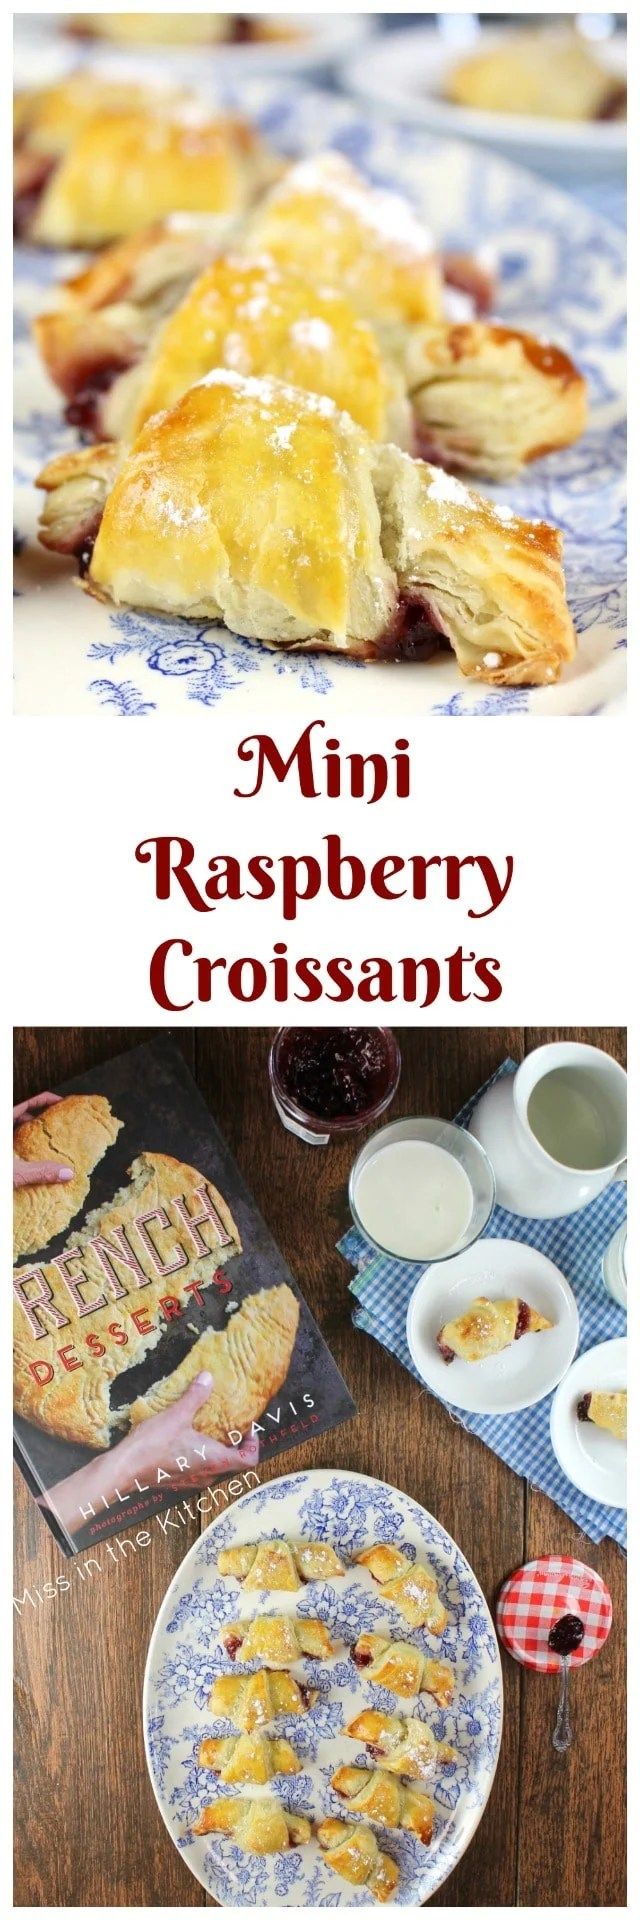 Mini Raspberry Croissants Recipe from French Desserts by Hillary Davis Perfect holiday dessert! Found at MissintheKitchen.com